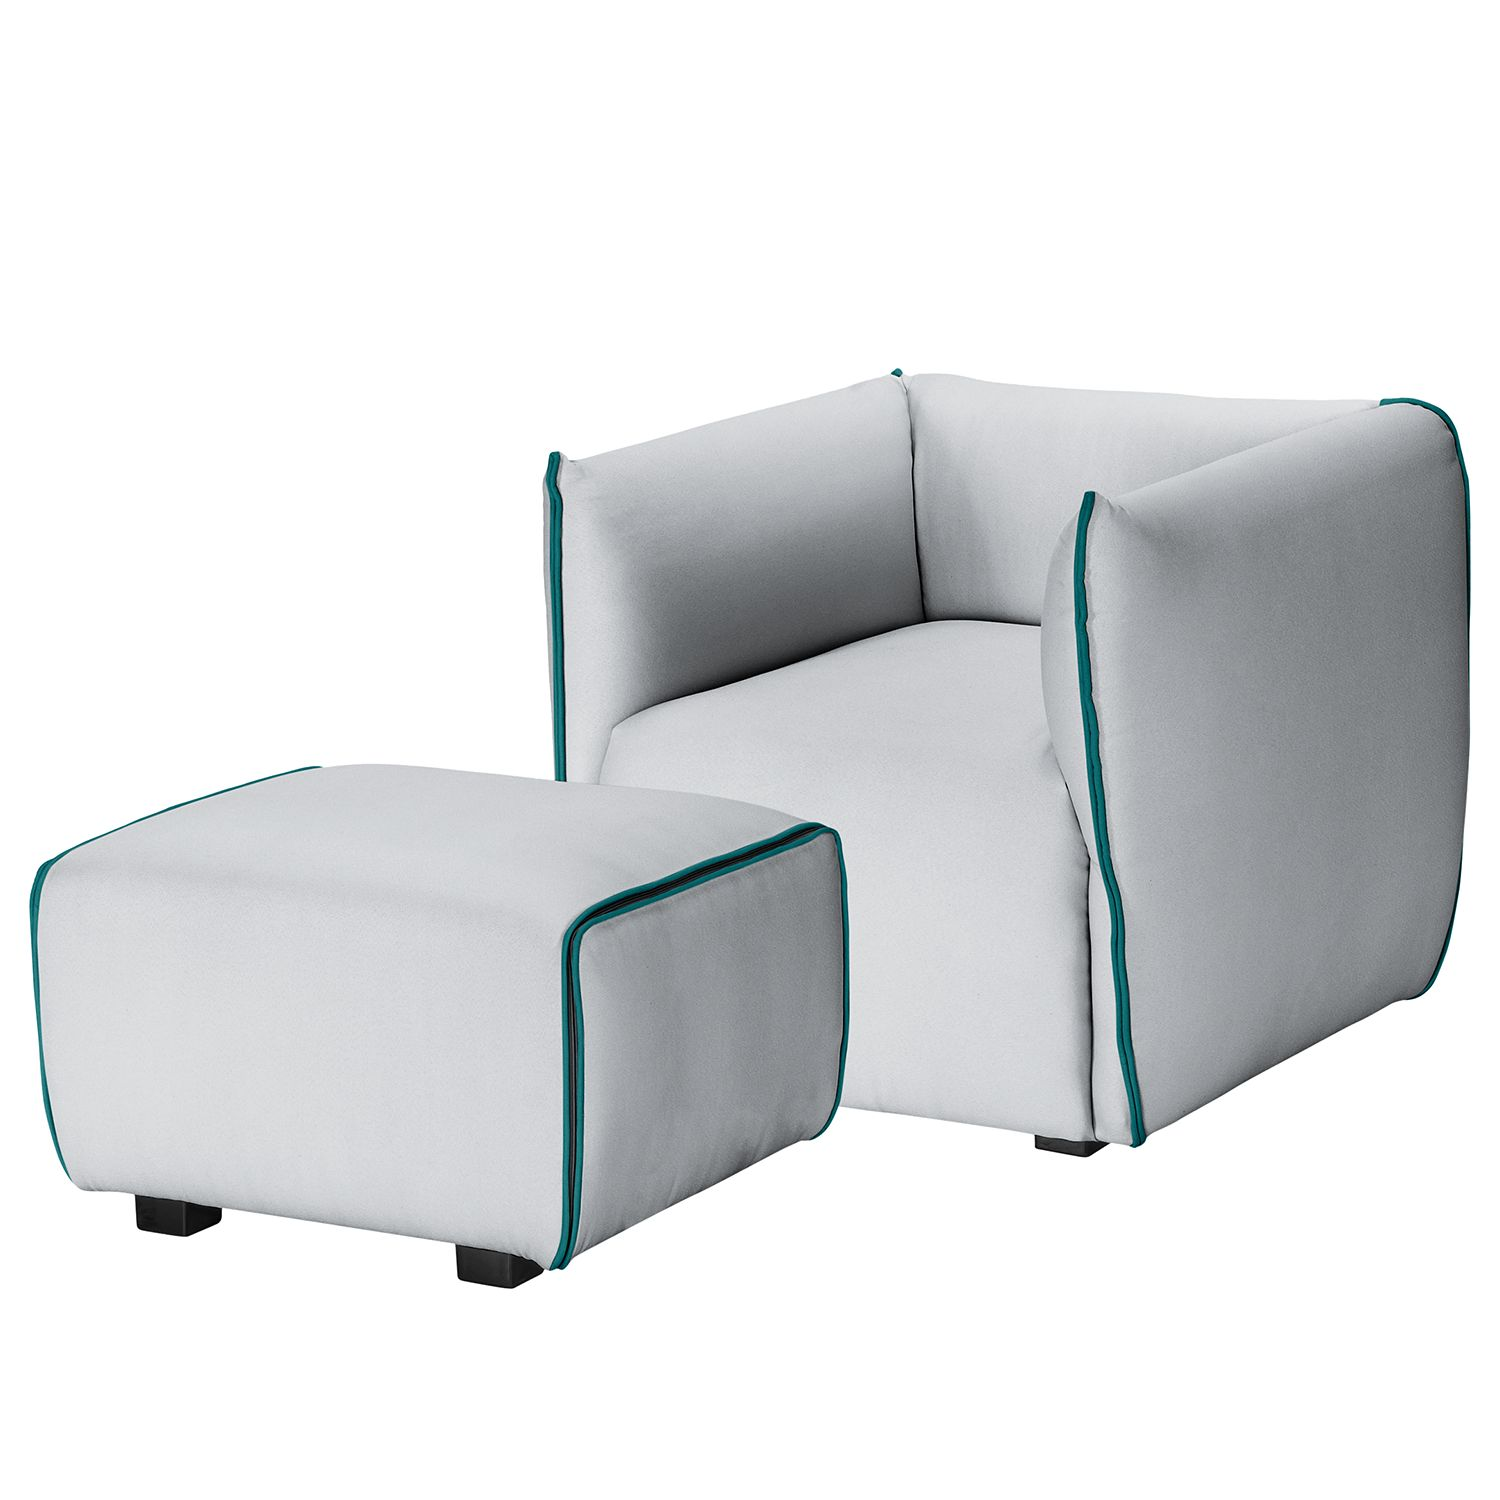 Fauteuil Grady II - Tissu - Avec repose-pieds - Gris clair / Turquoise, Fredriks